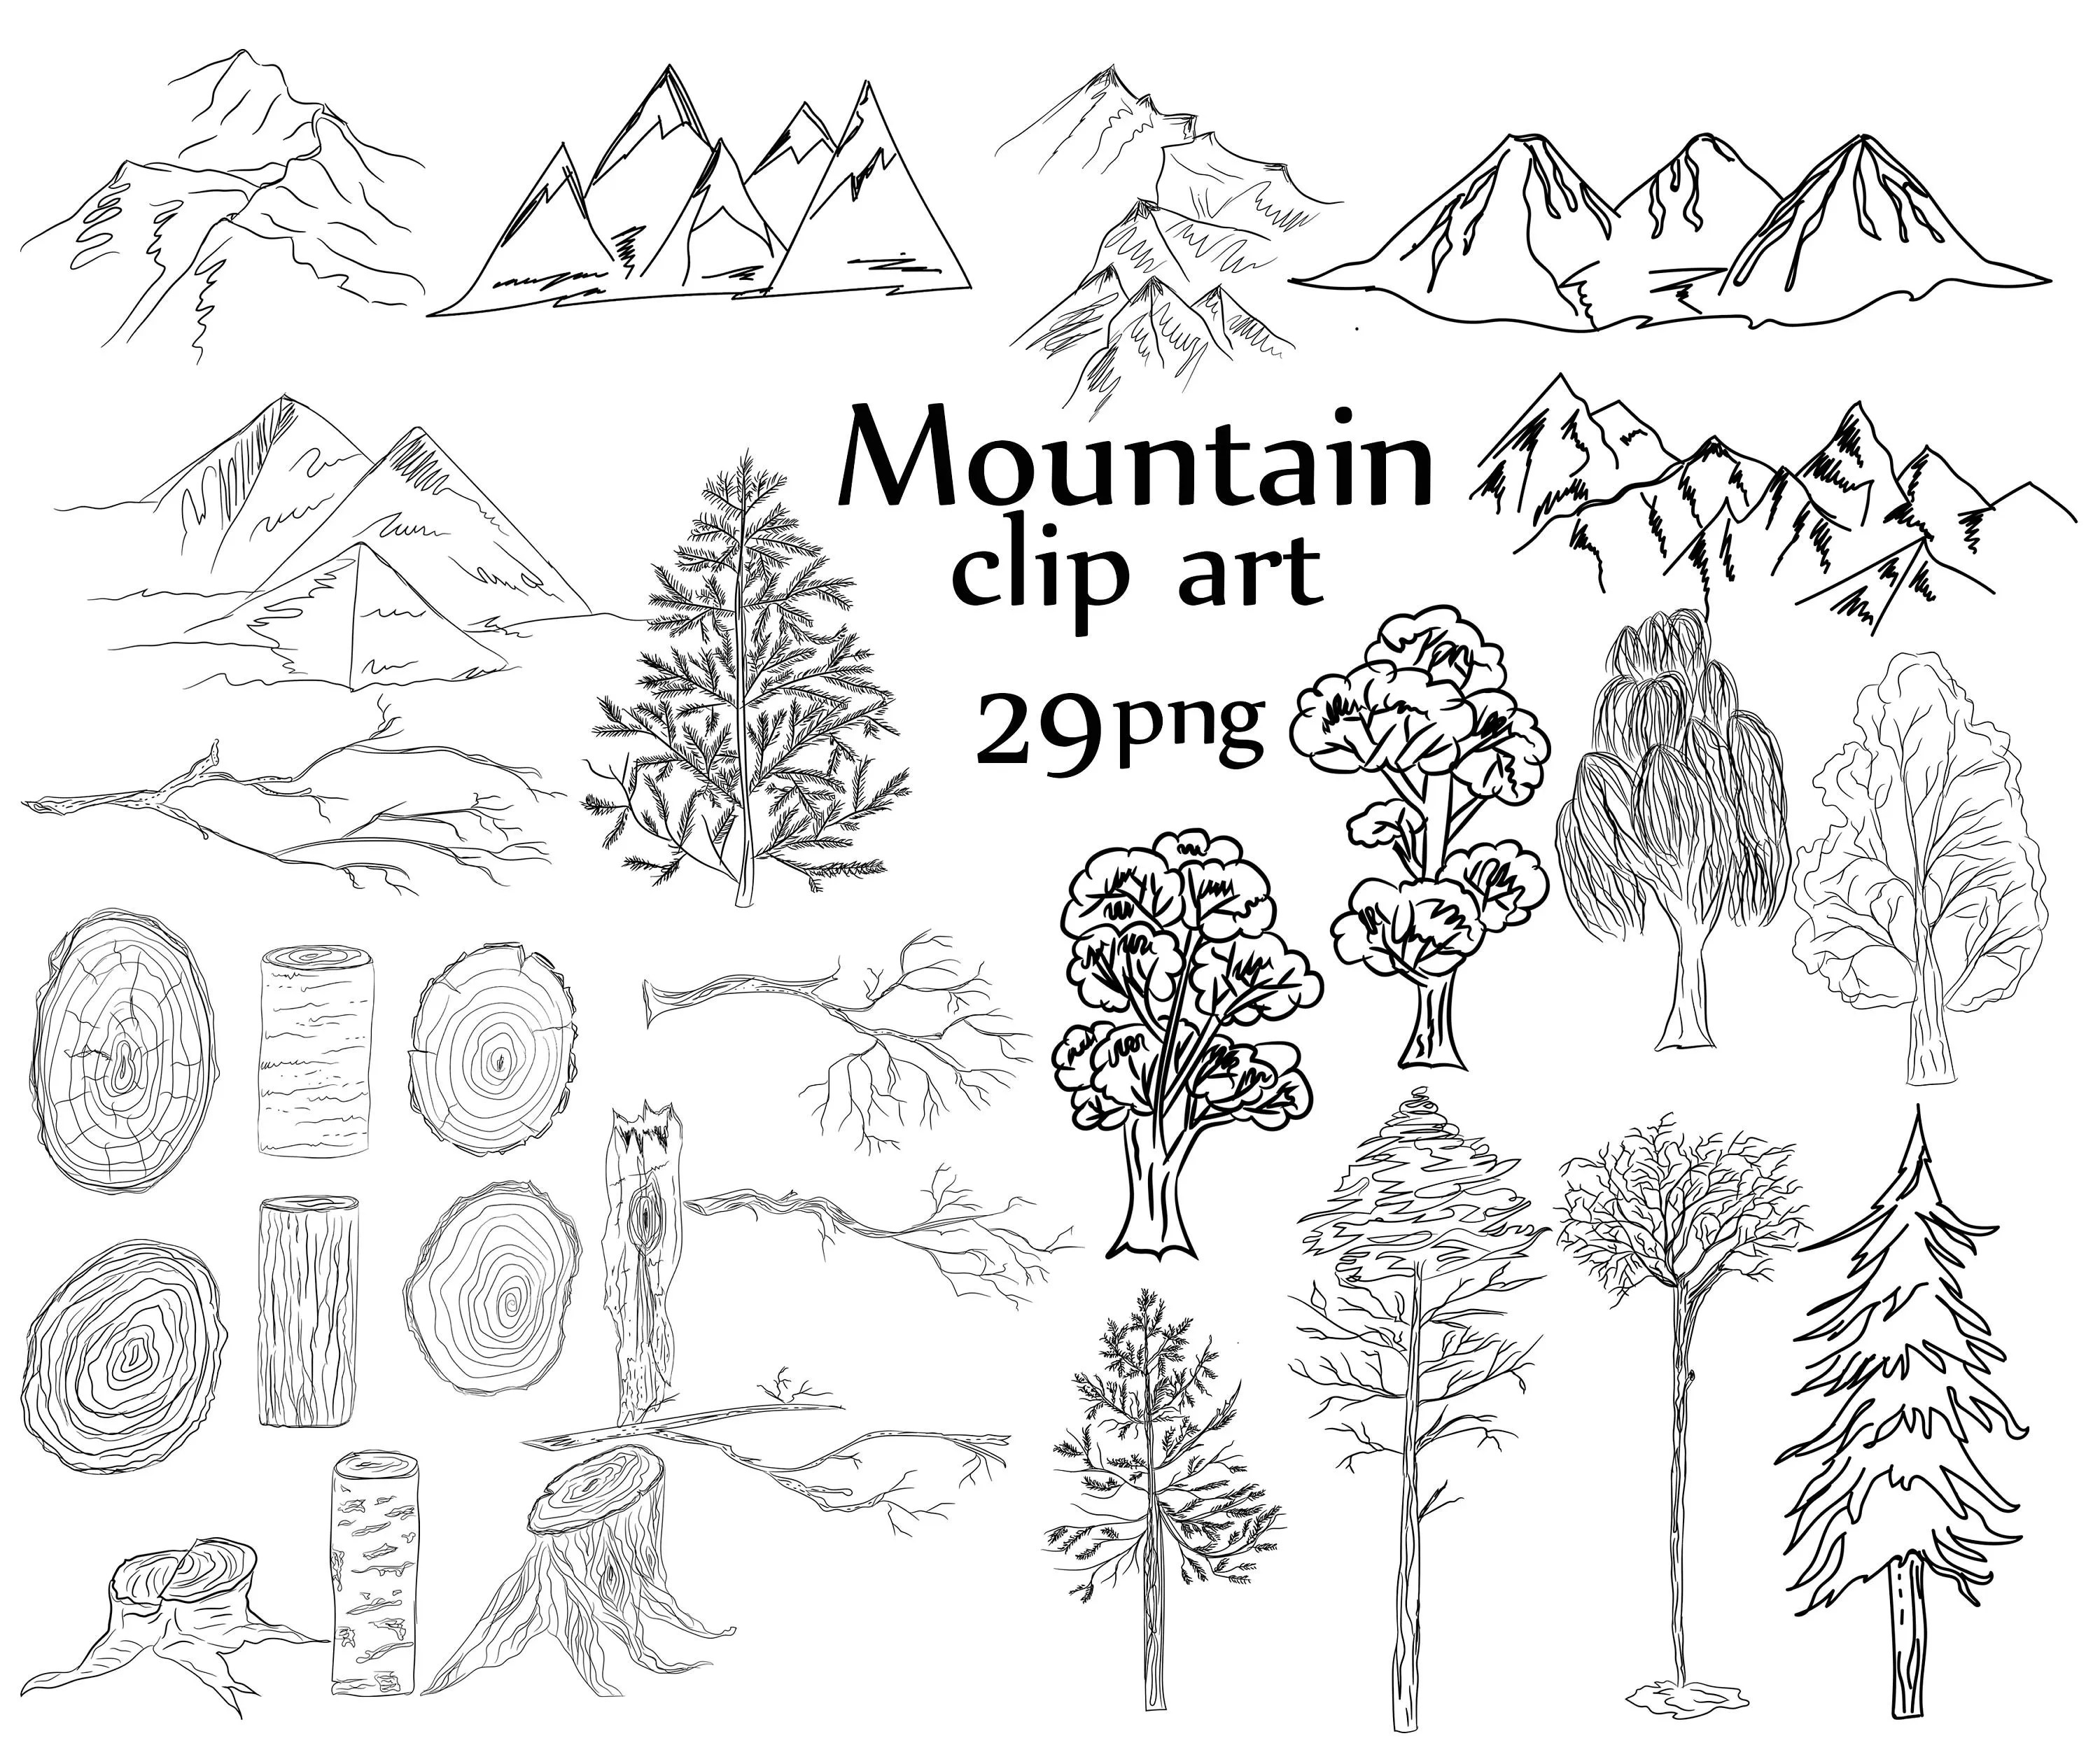 Mountain Clip Art Mountains Clip Art Mountain